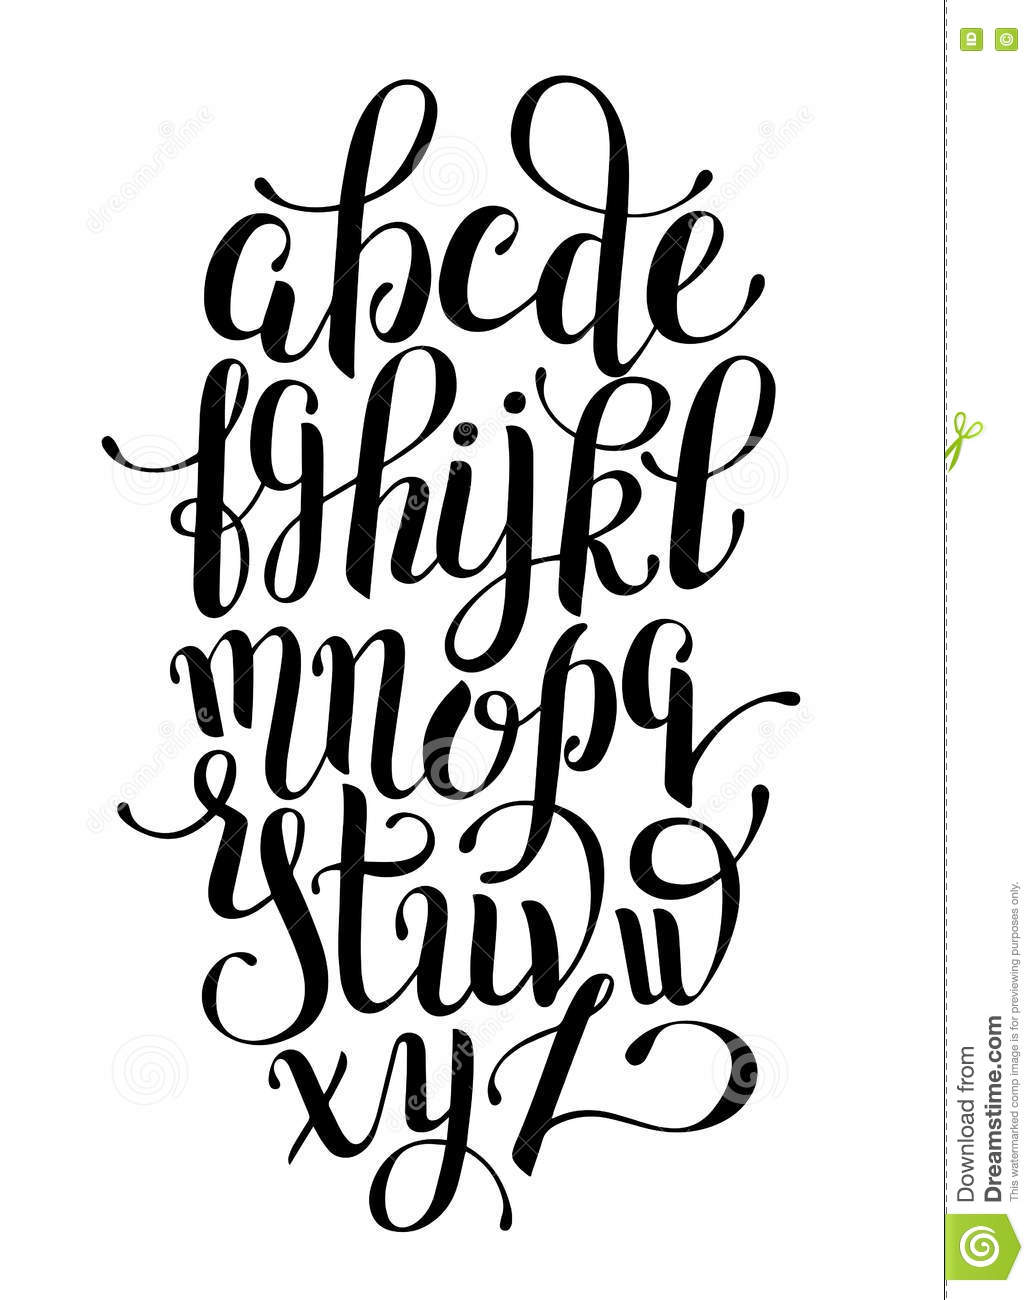 Black and white hand lettering alphabet design